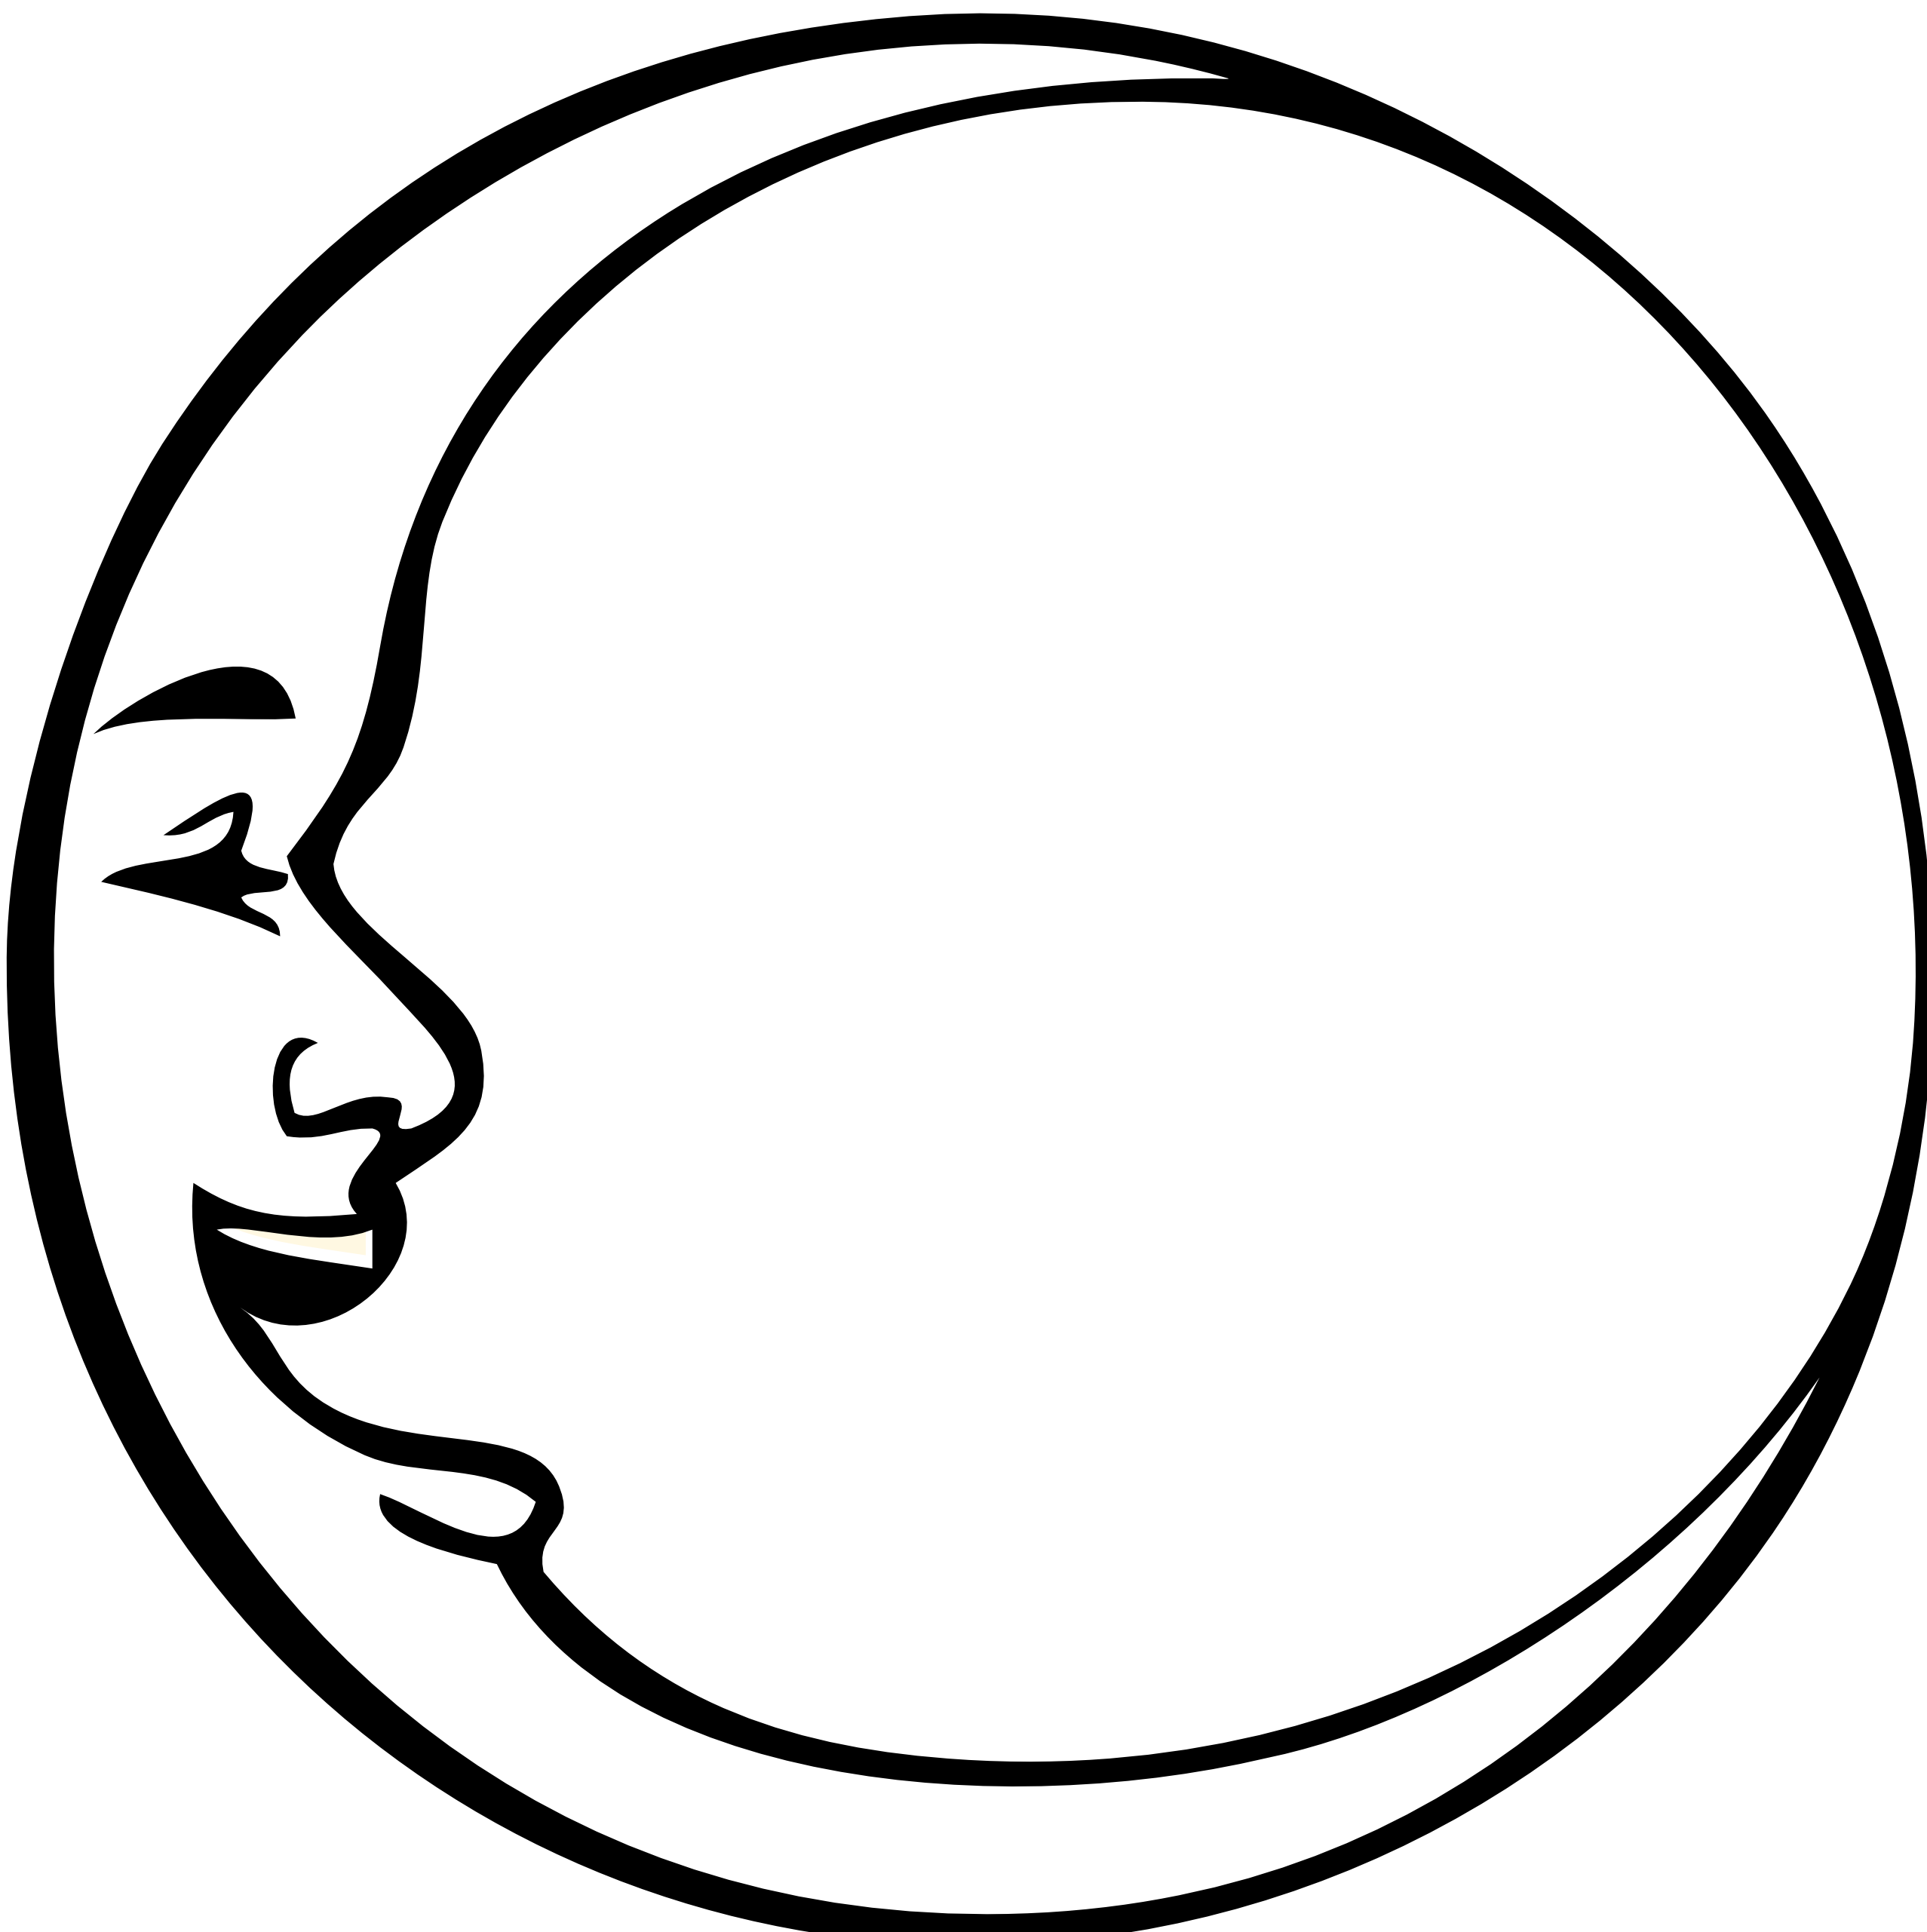 Outline The Moon - ClipArt Best